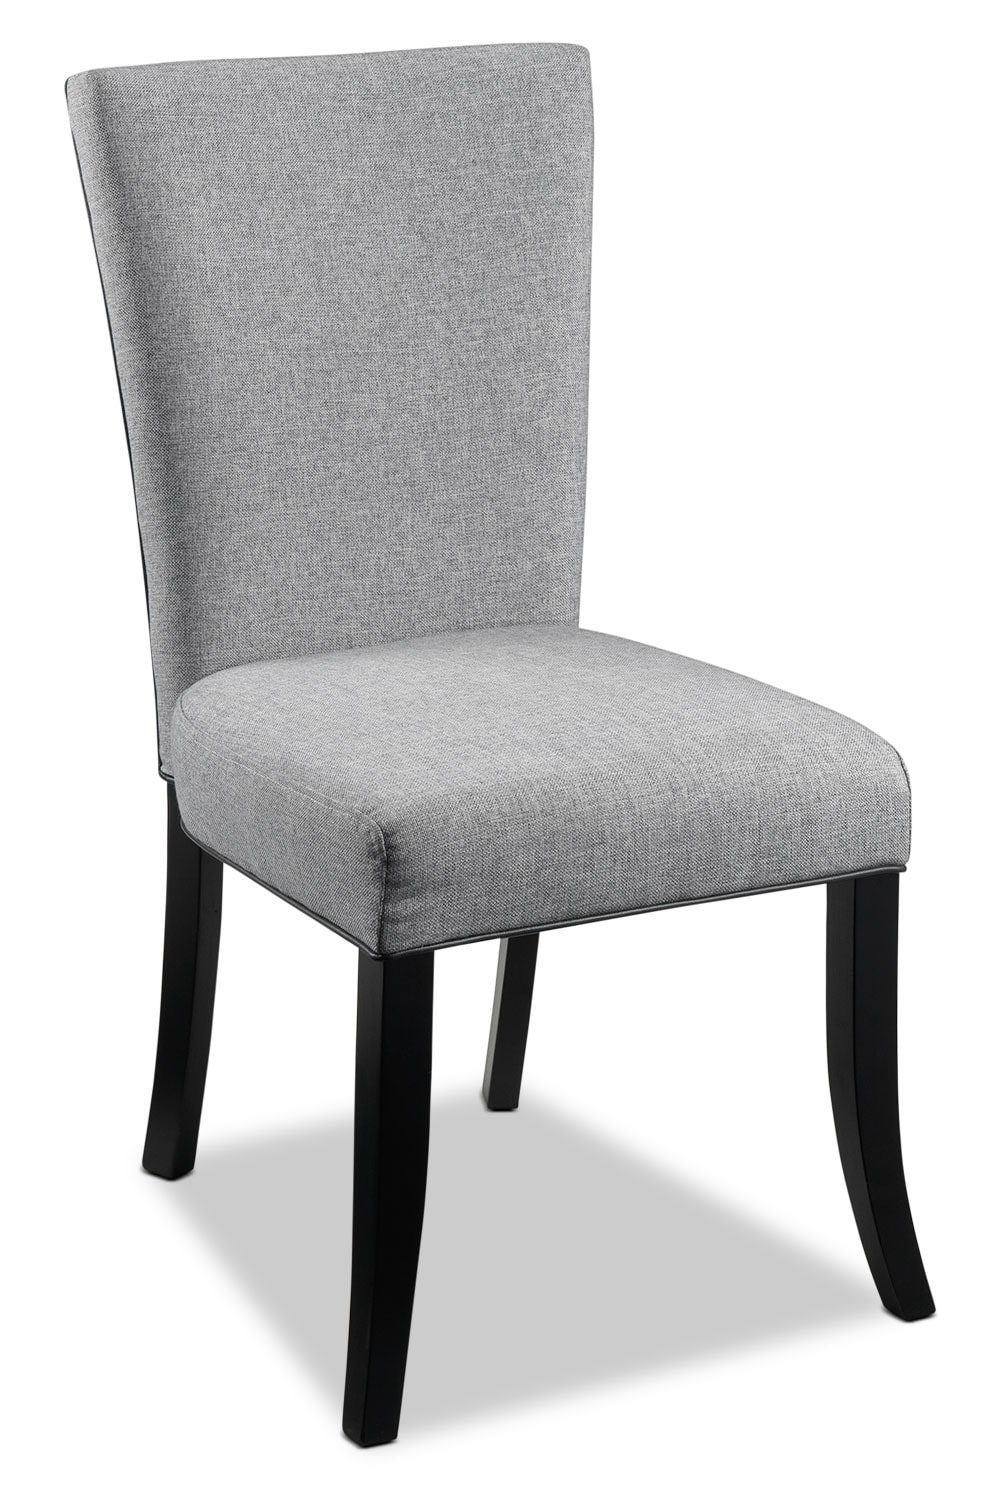 Casual Dining Room Furniture - Astro Side Chair - Grey